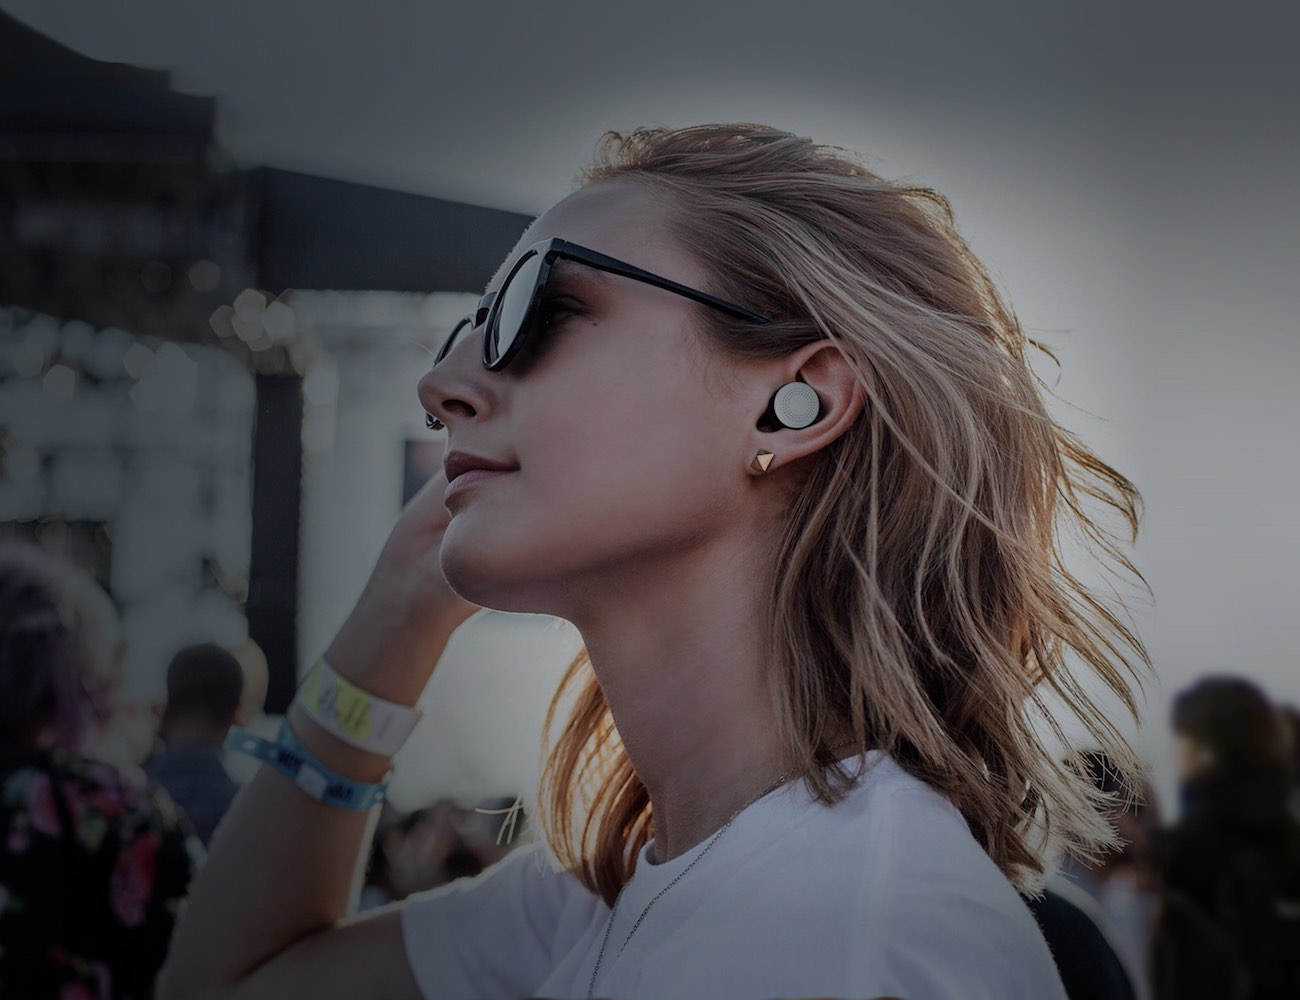 Here+Active+Listening+%26%238211%3B+First+In-Ear+Audio+System+From+Doppler+Labs